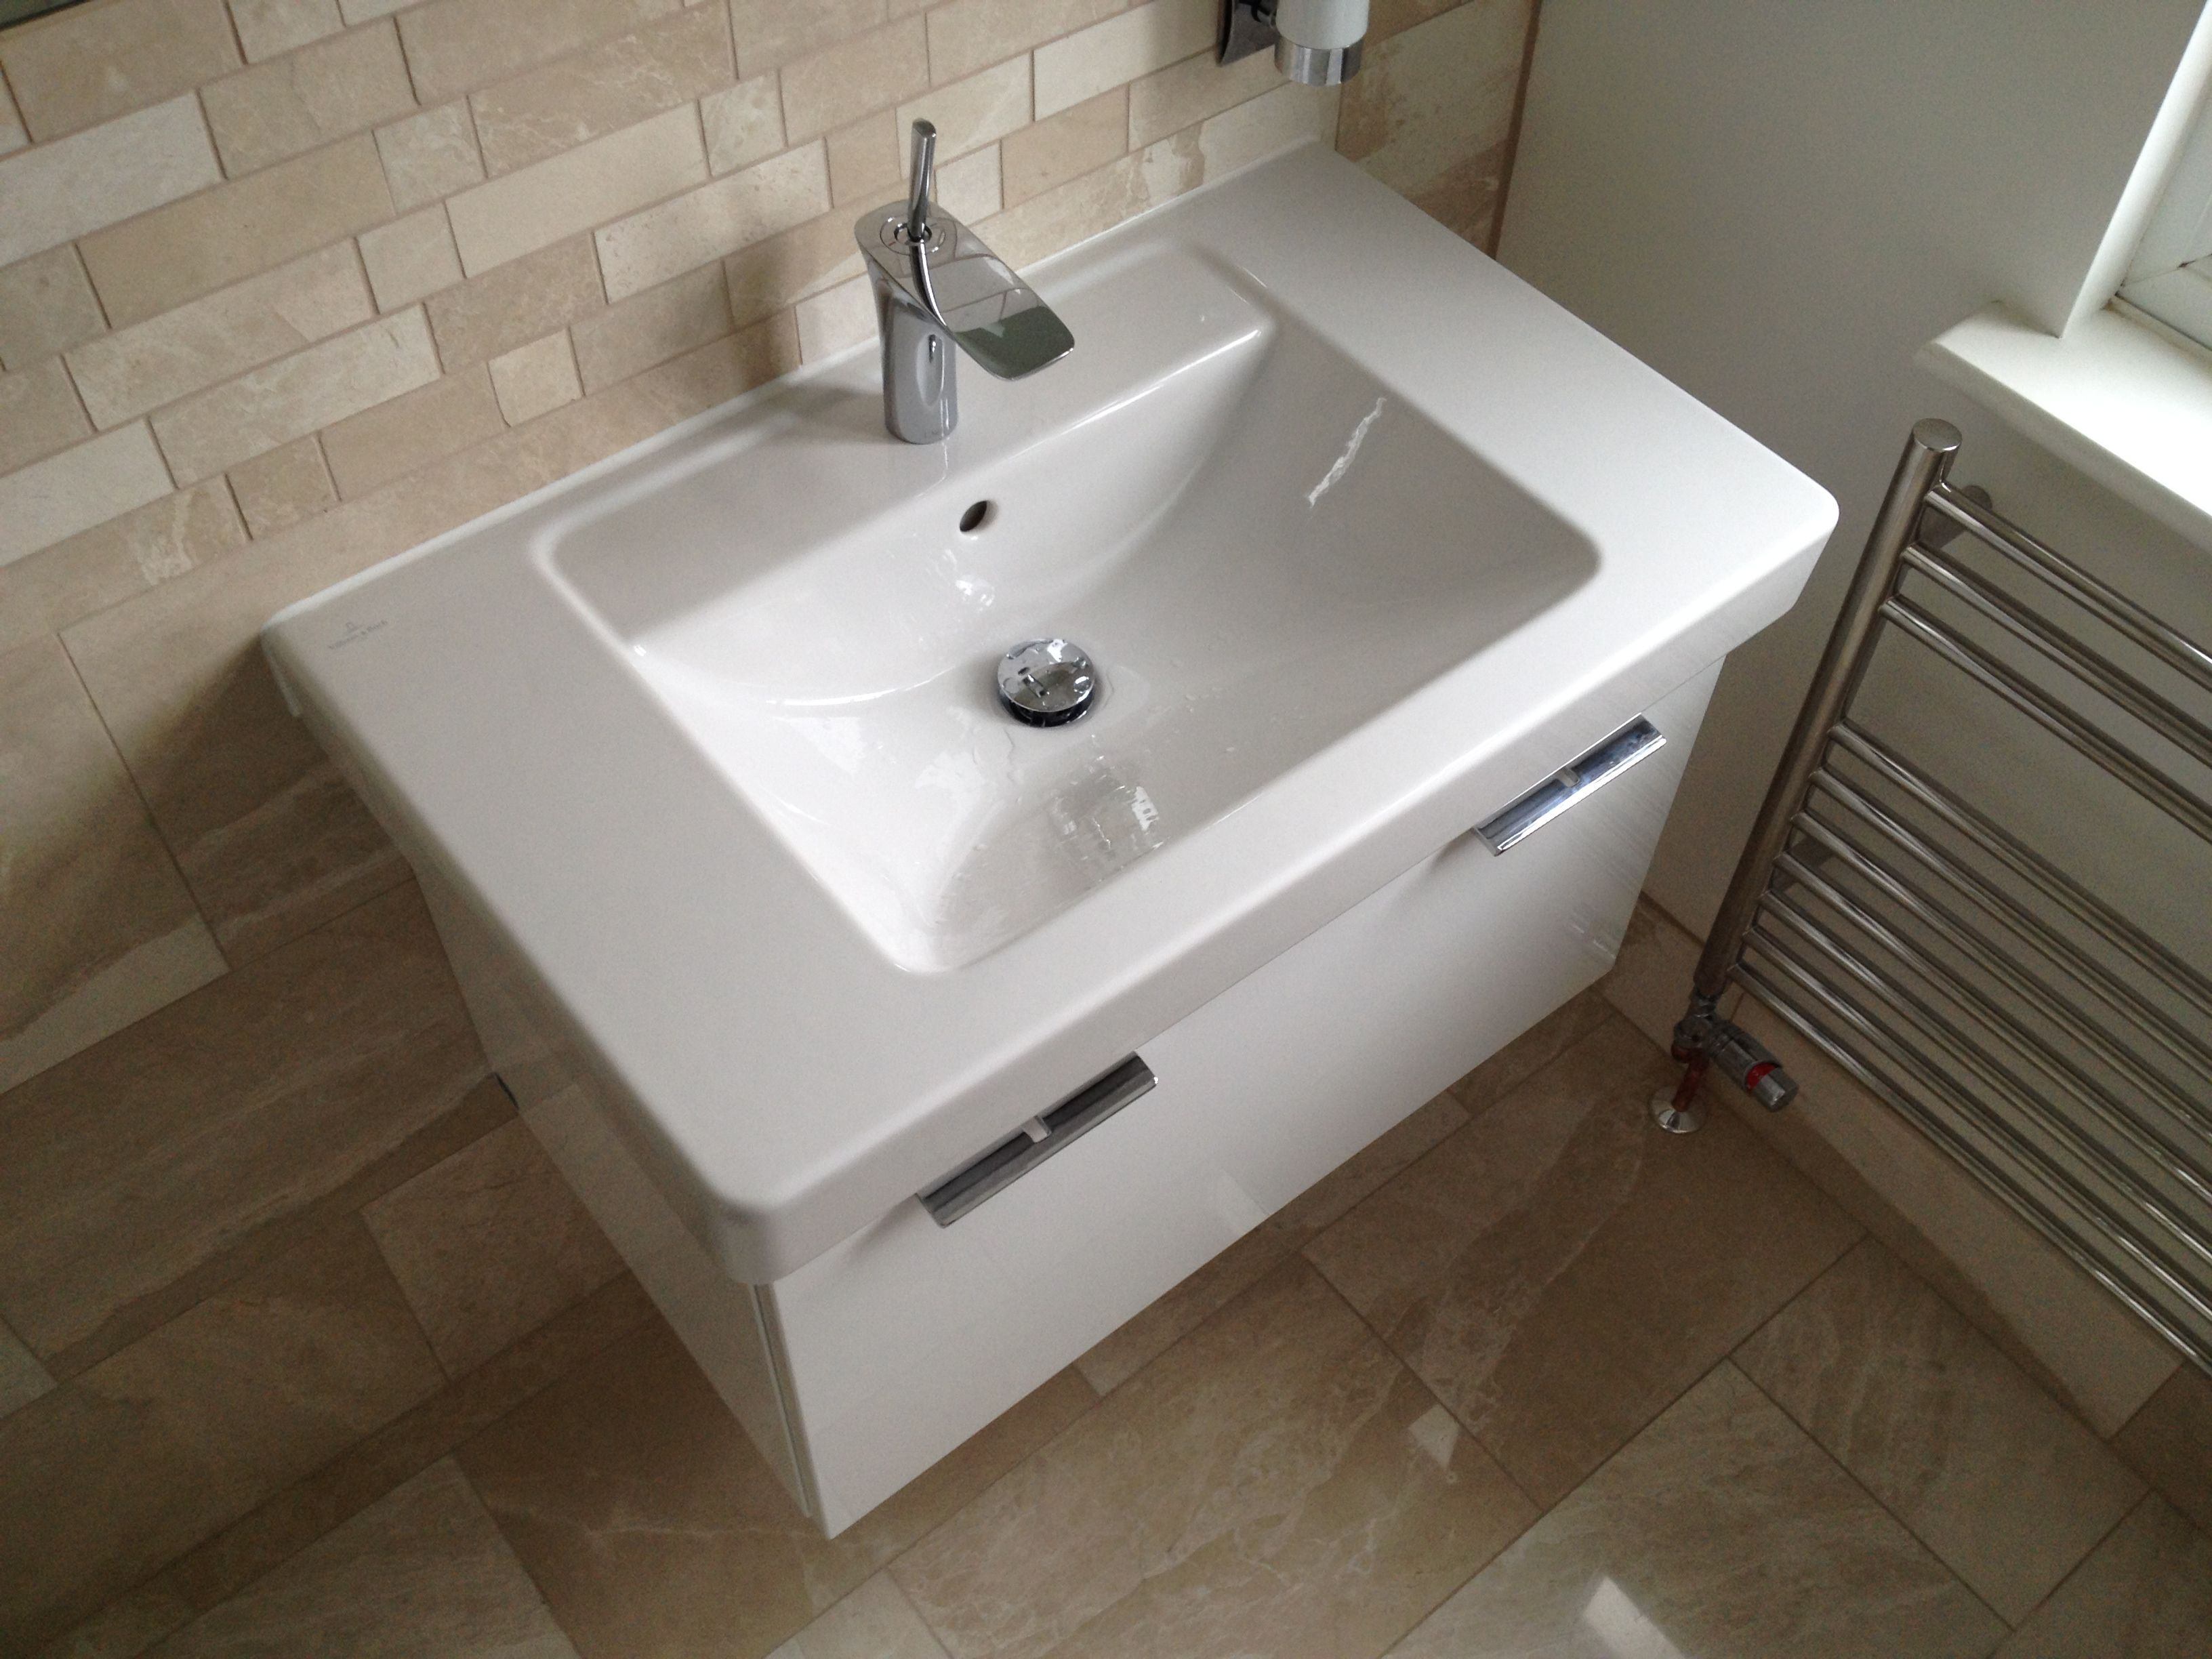 Villeroy & Boch basin with Hansgrohe tap installed by AQUANERO ...